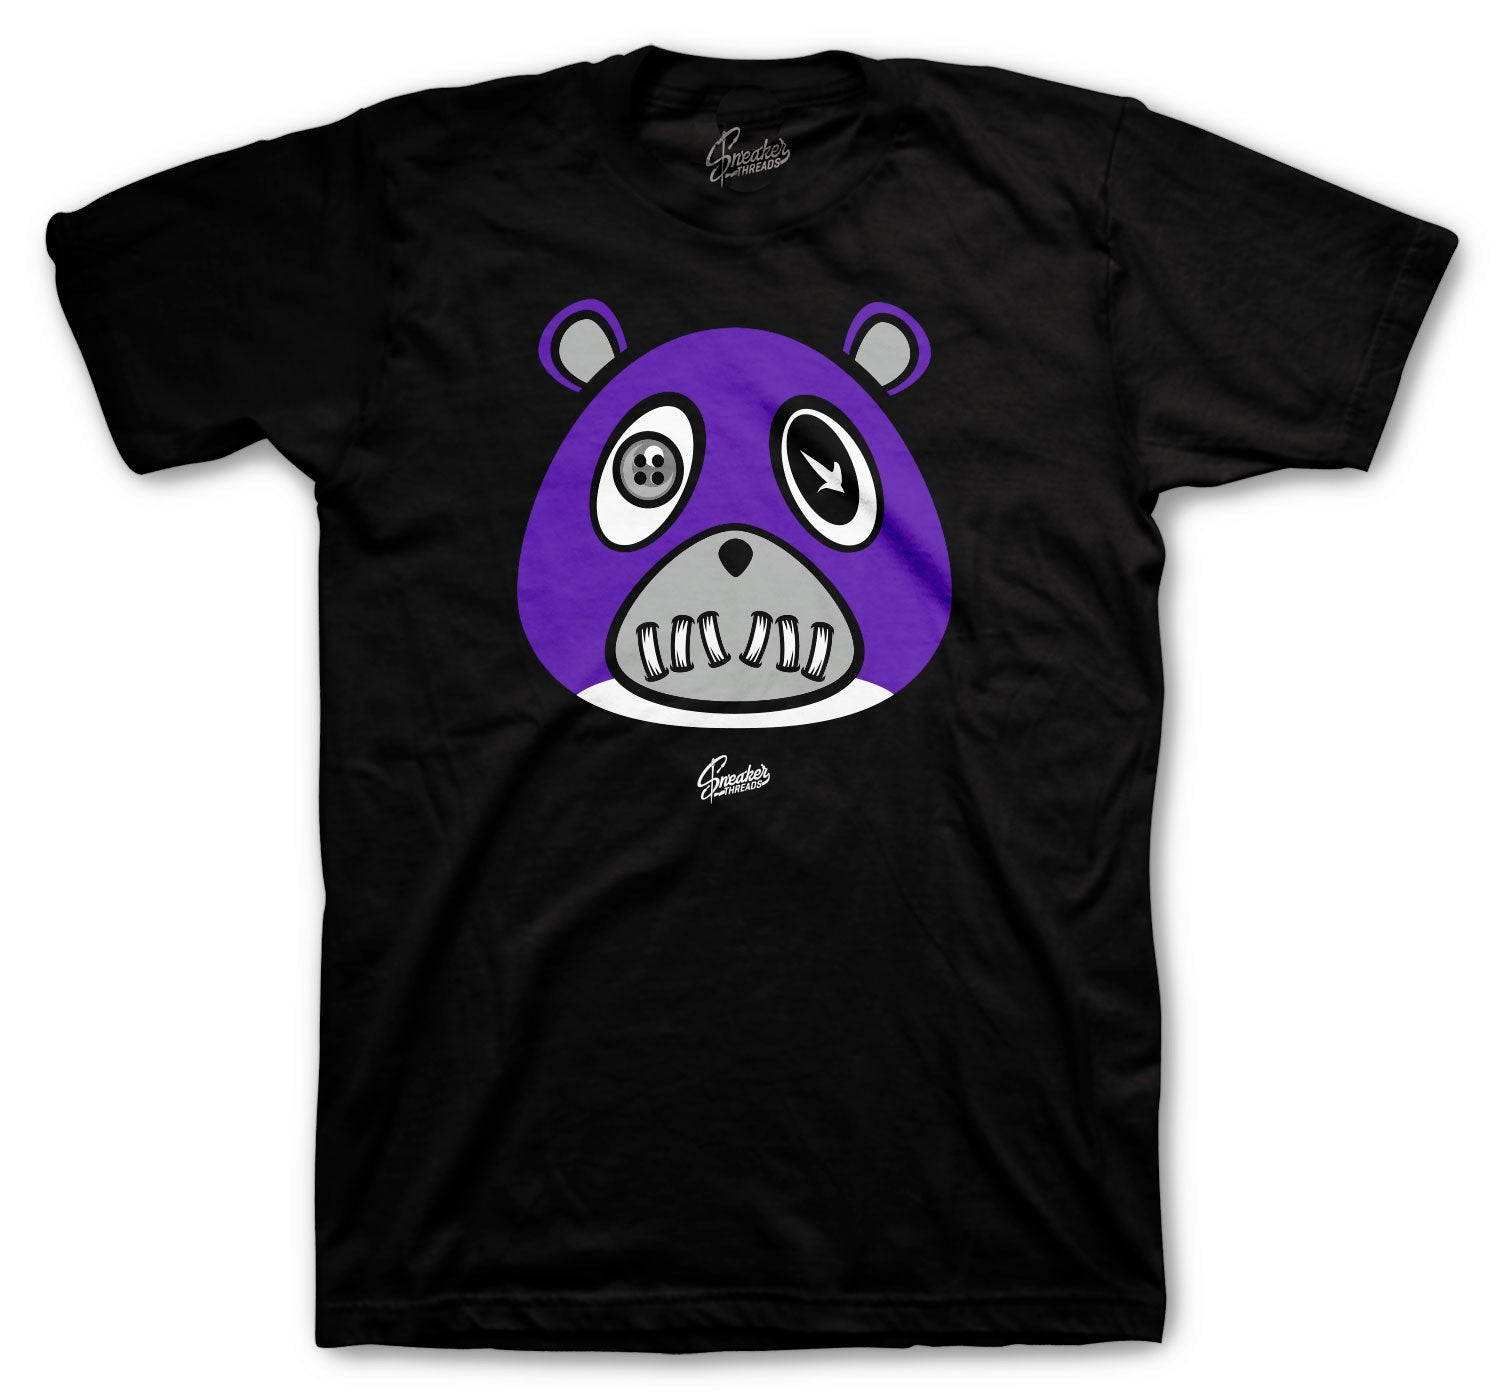 Jordan 12 Dark Concord ST Bear Shirt